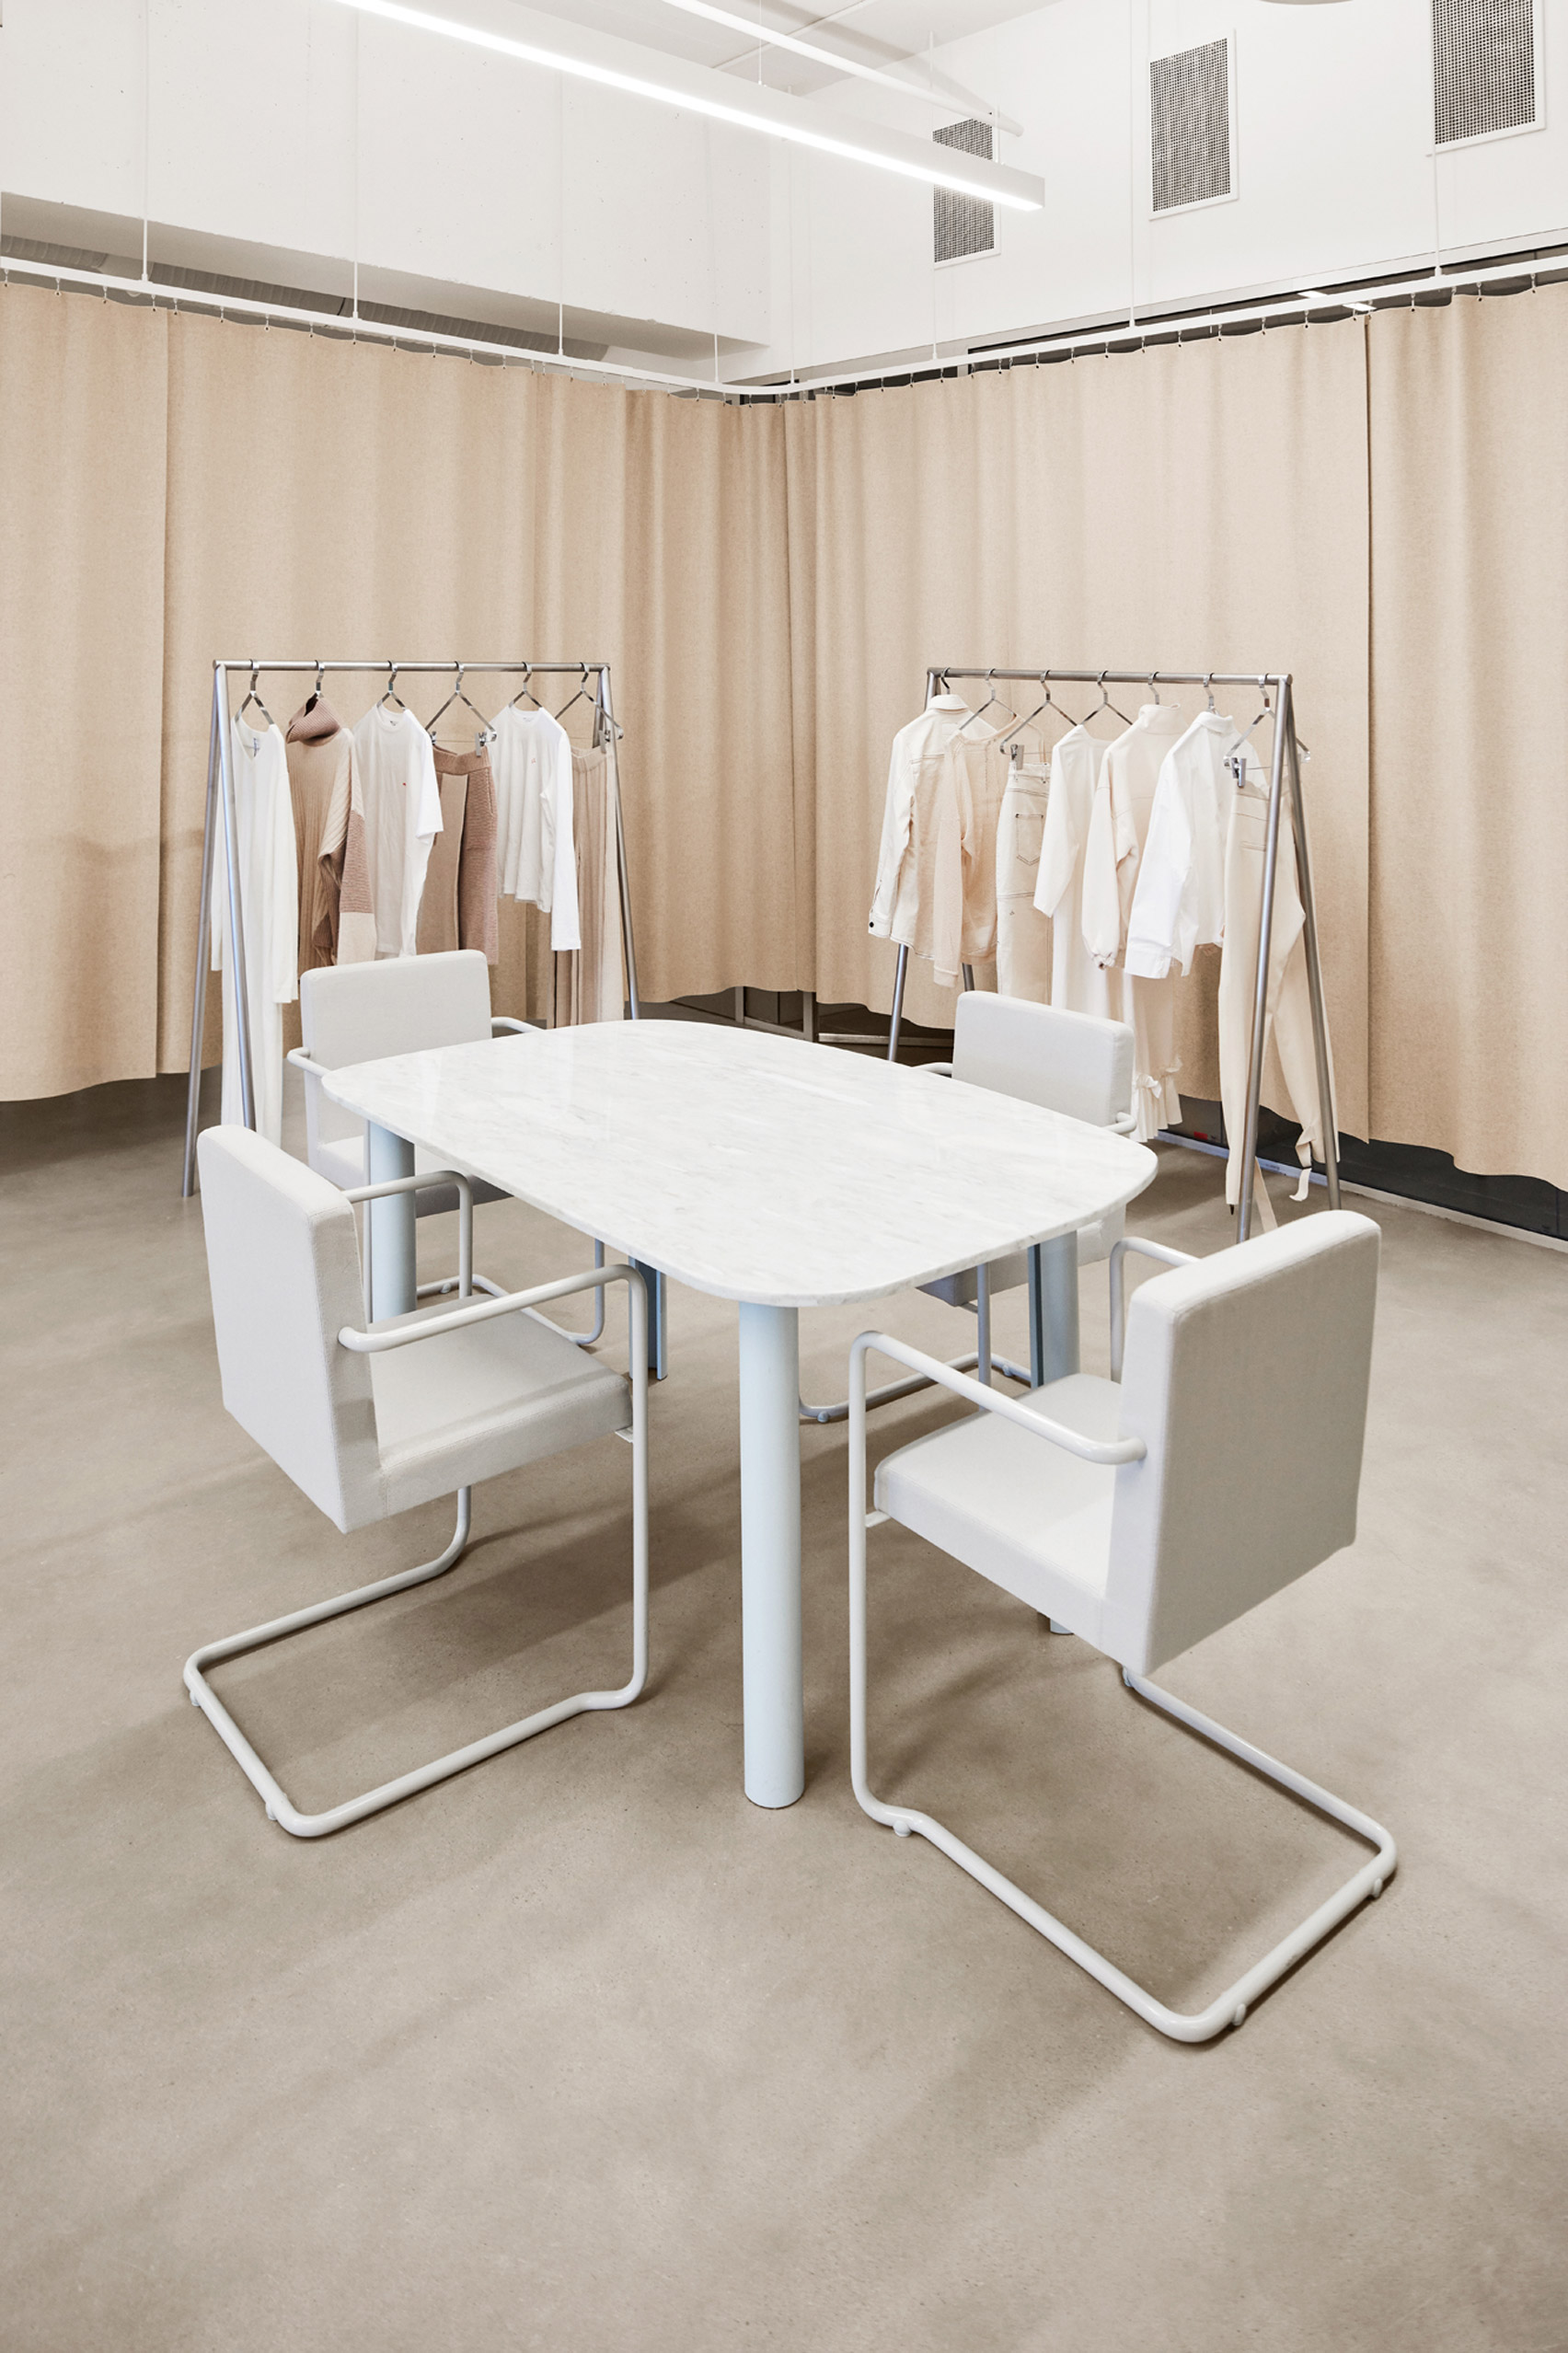 Contemporary fashion showroom in Oslo, Norway.